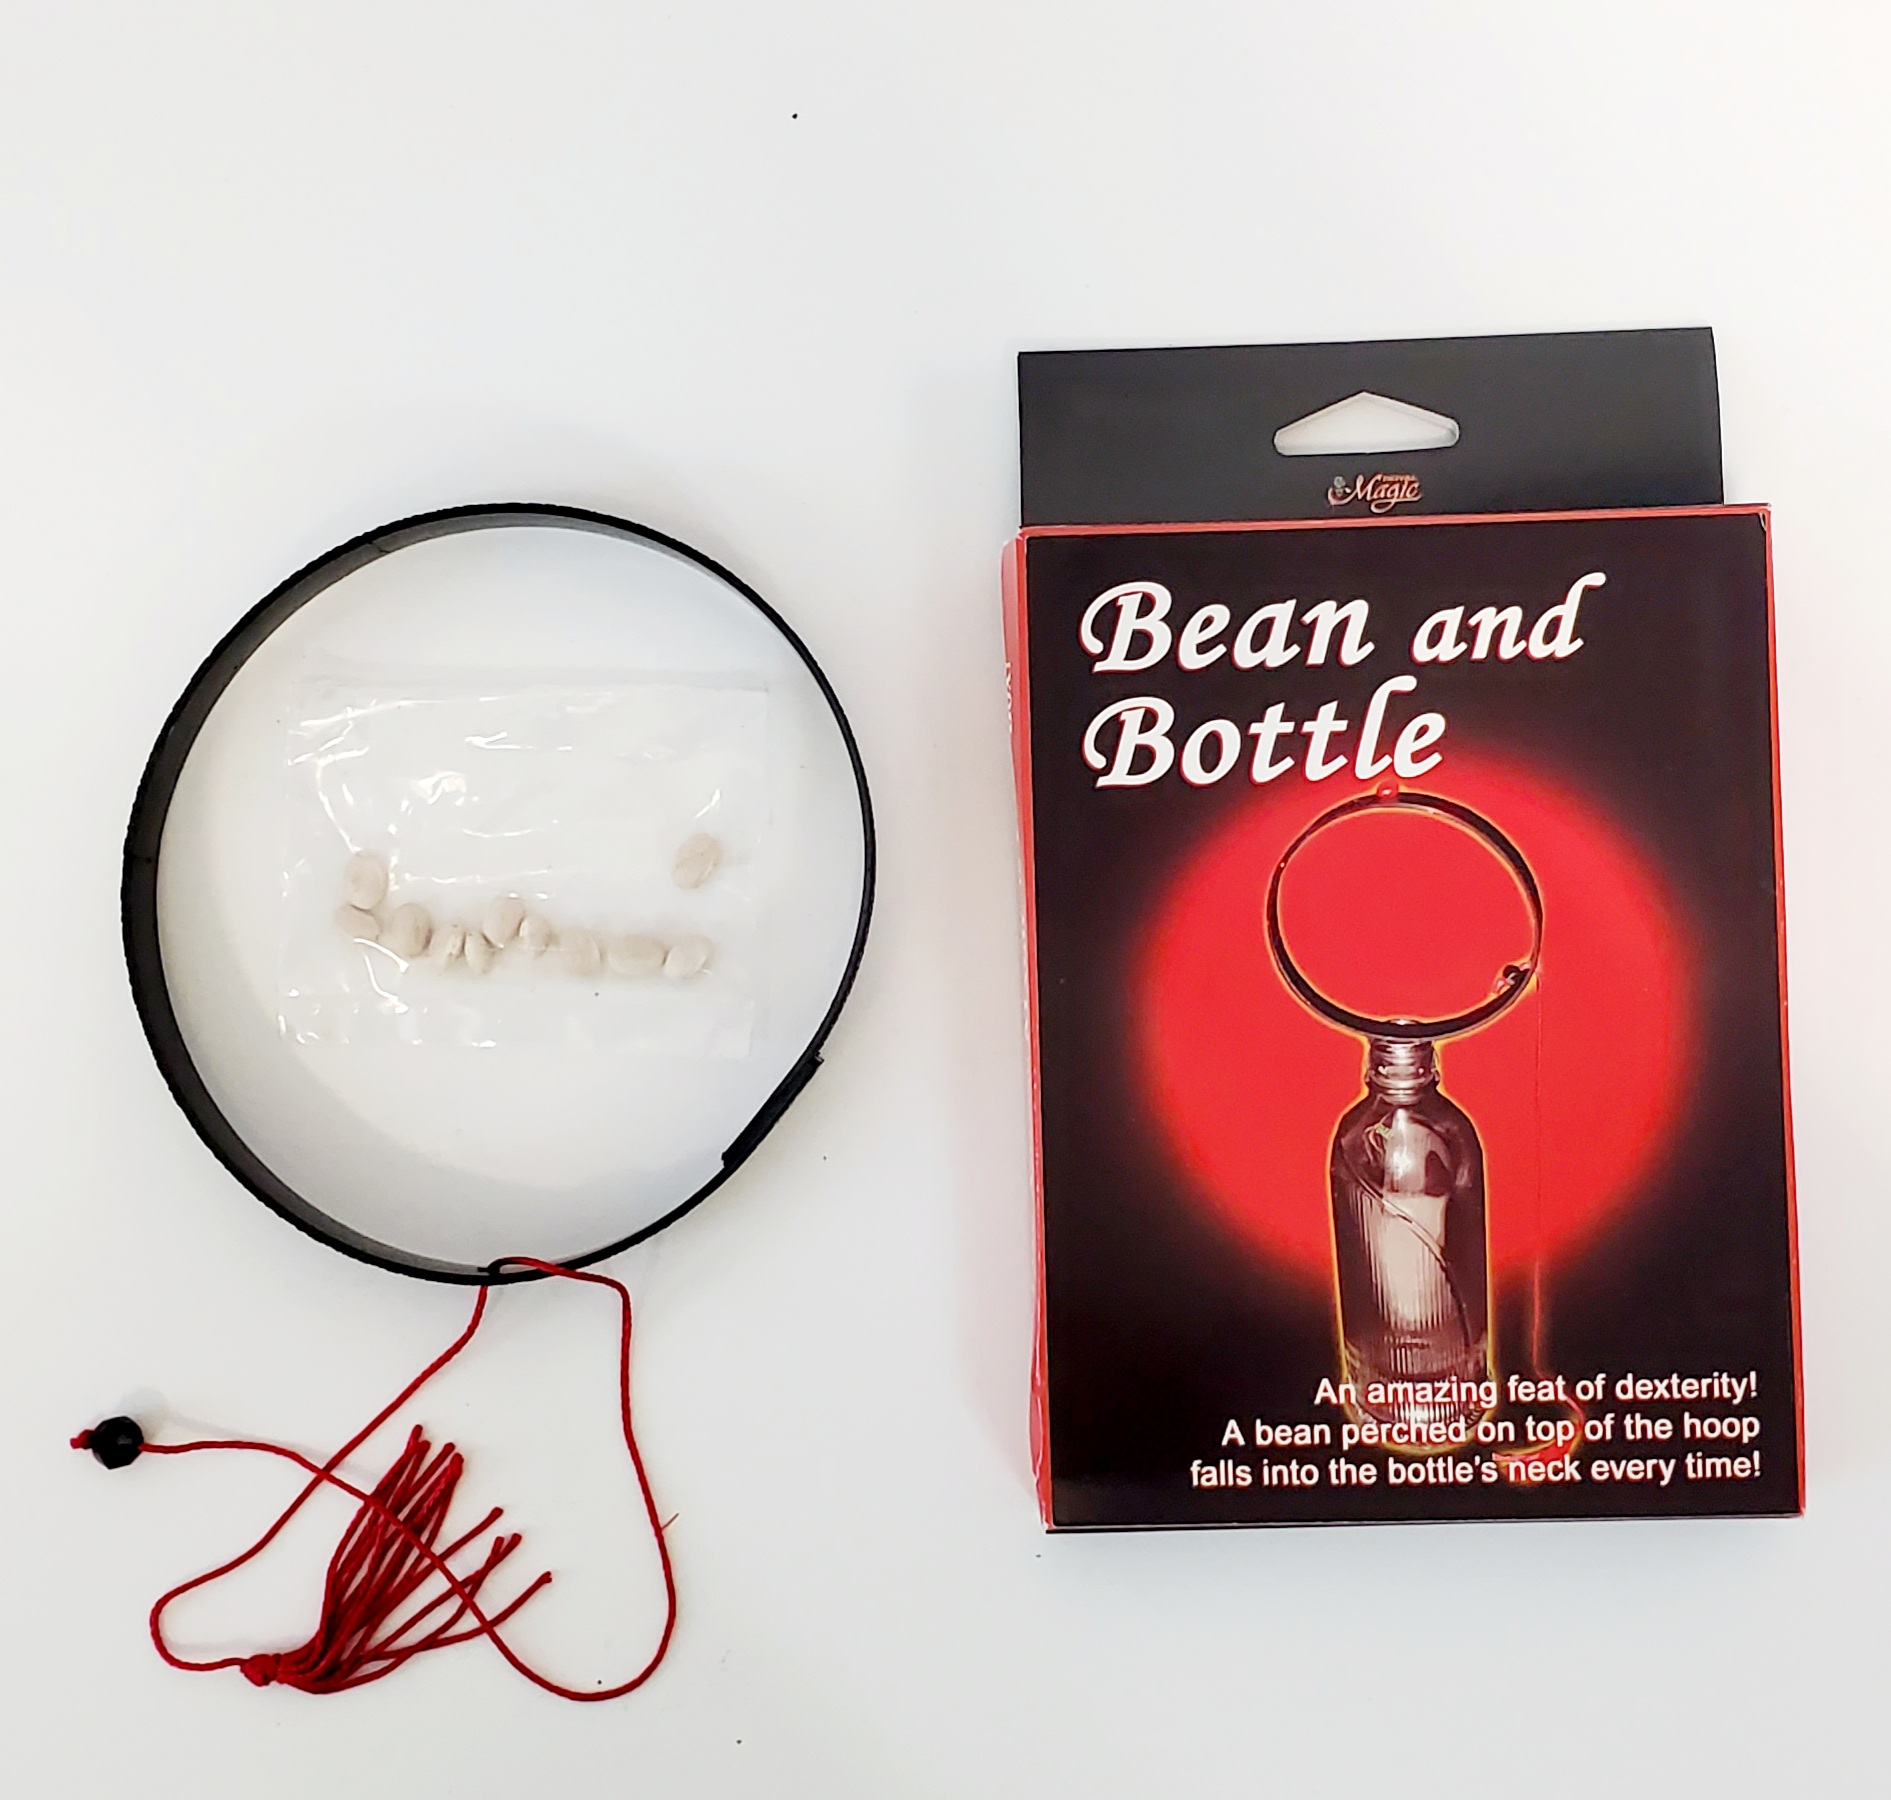 Bean and Bottle - Royal